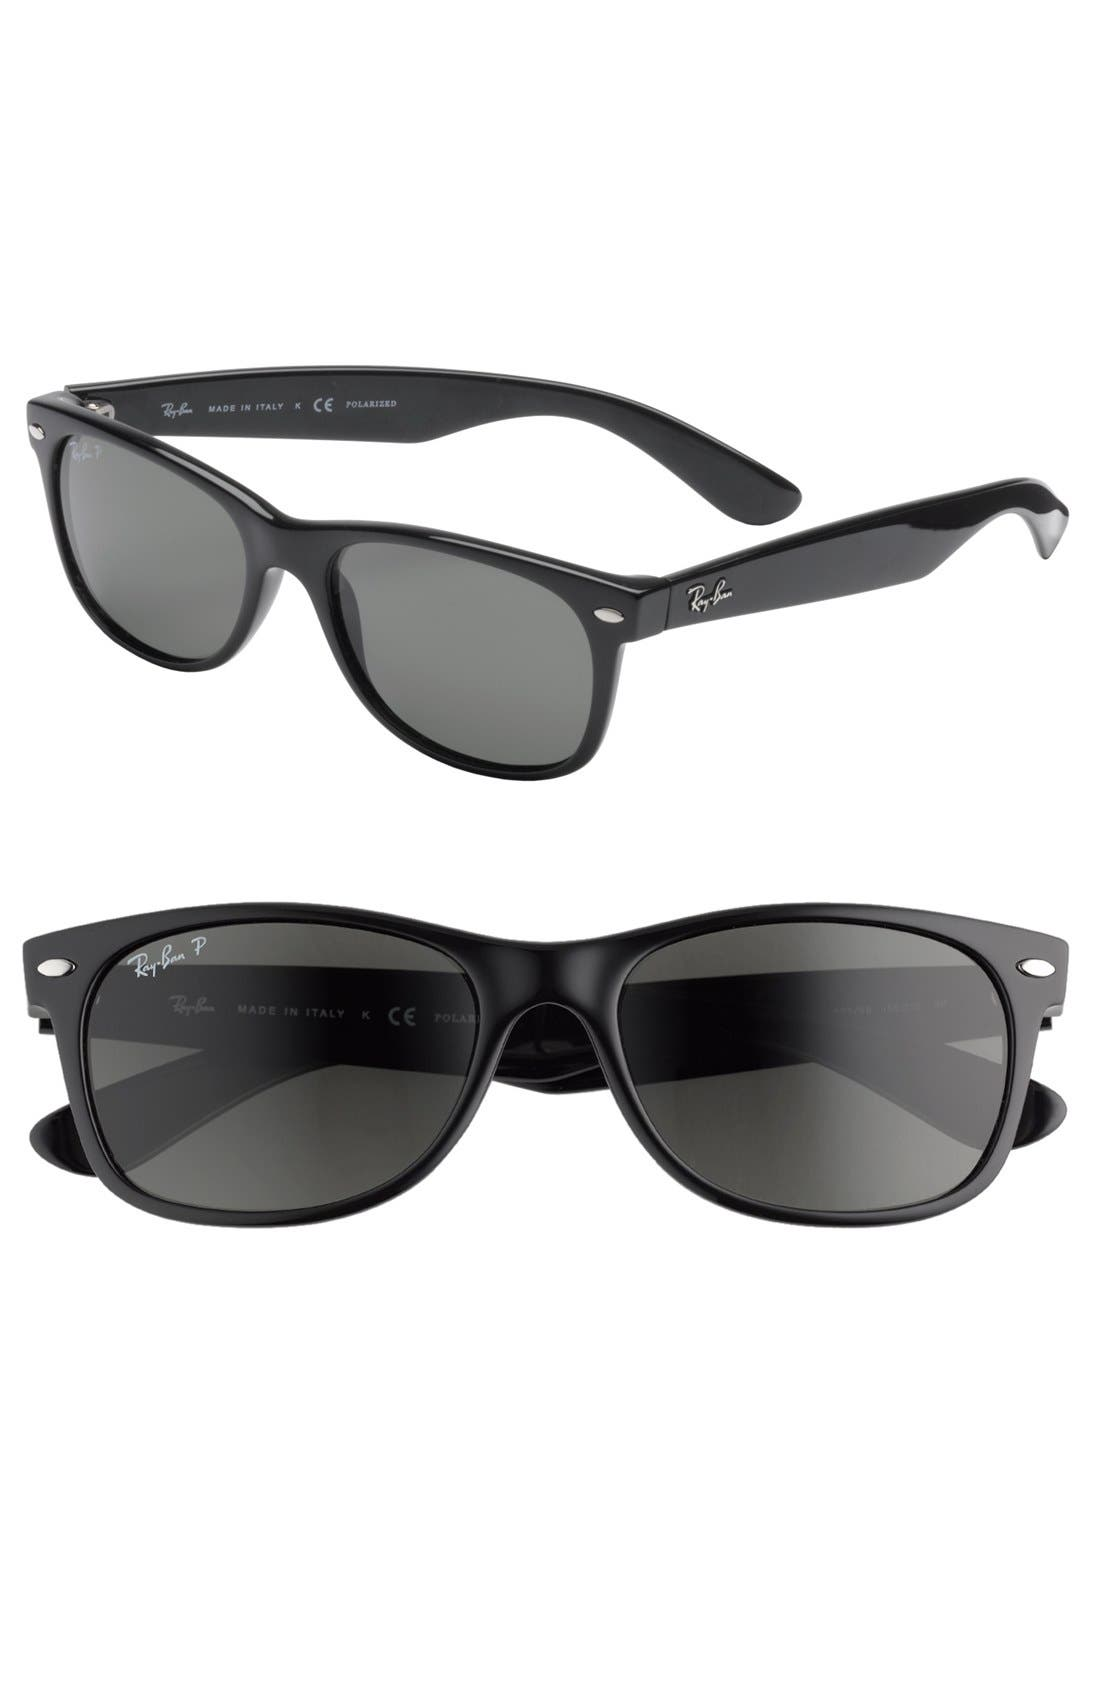 Main Image - Ray-Ban 'New Wayfarer' 55mm Polarized Sunglasses